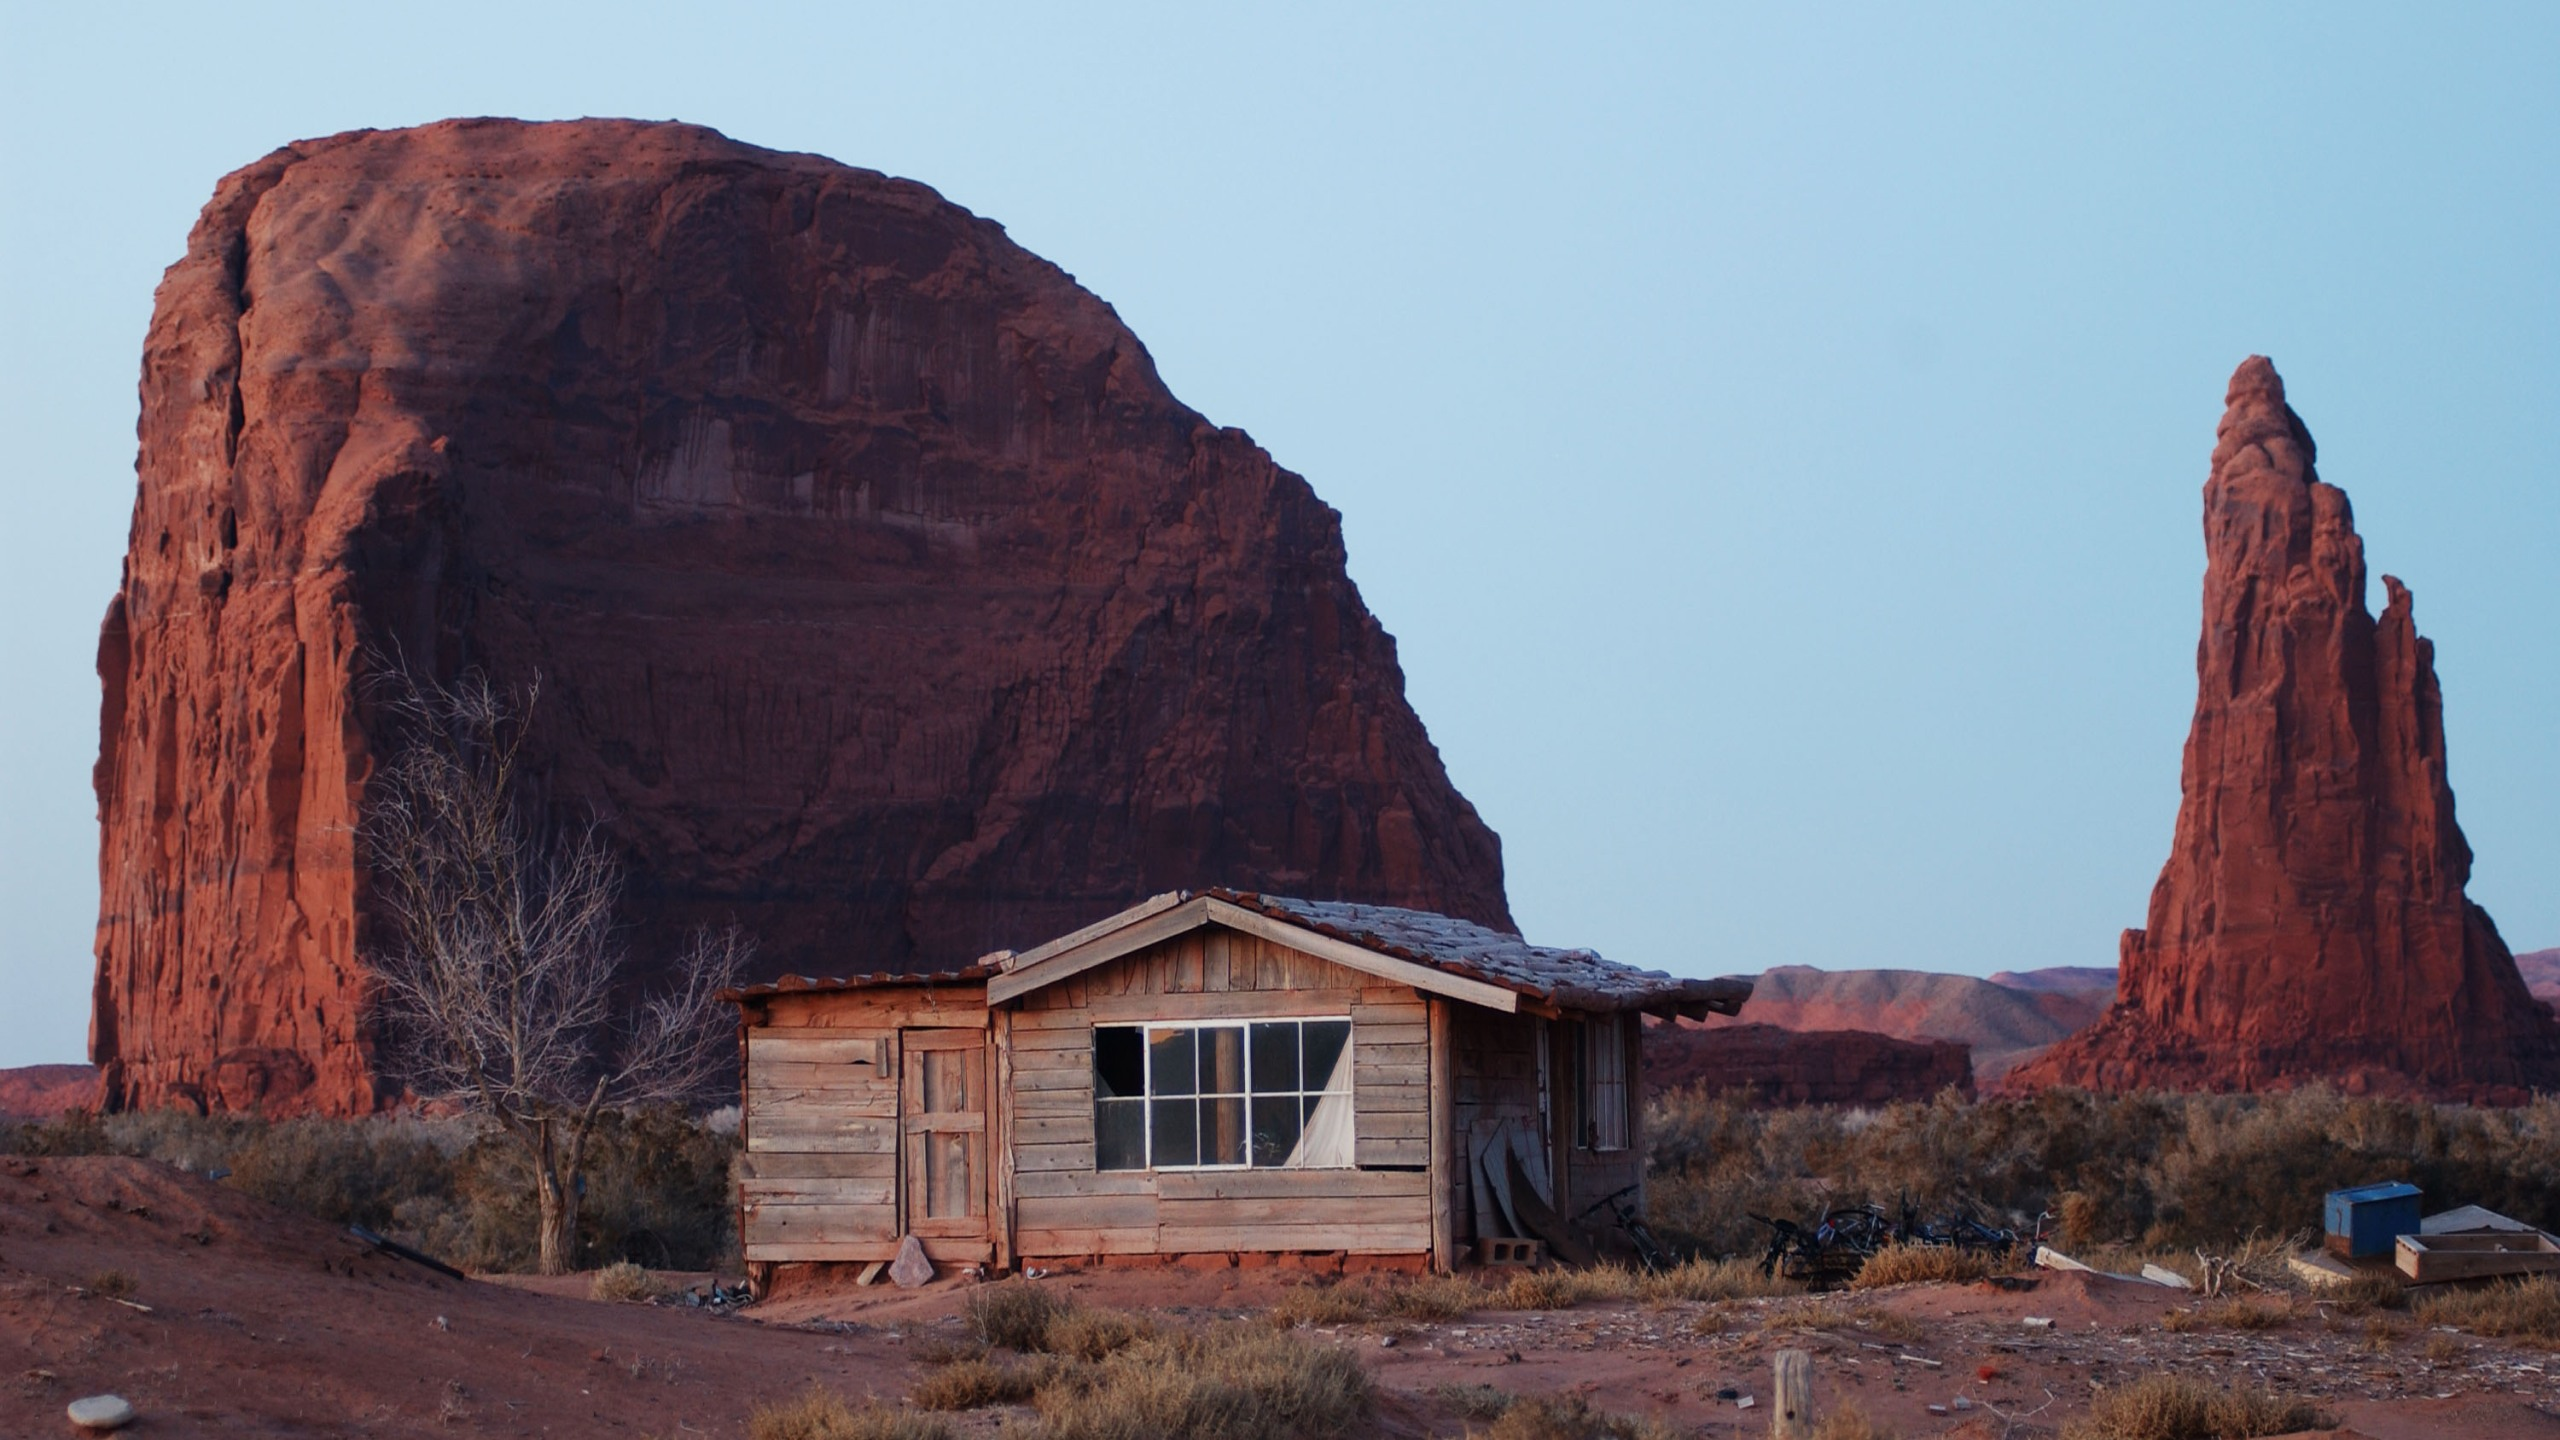 A house stands near sandstone formations south of Rock Point on the Navajo Reservation in Arizona on Dec. 5, 2002. (David McNew/Getty Images)